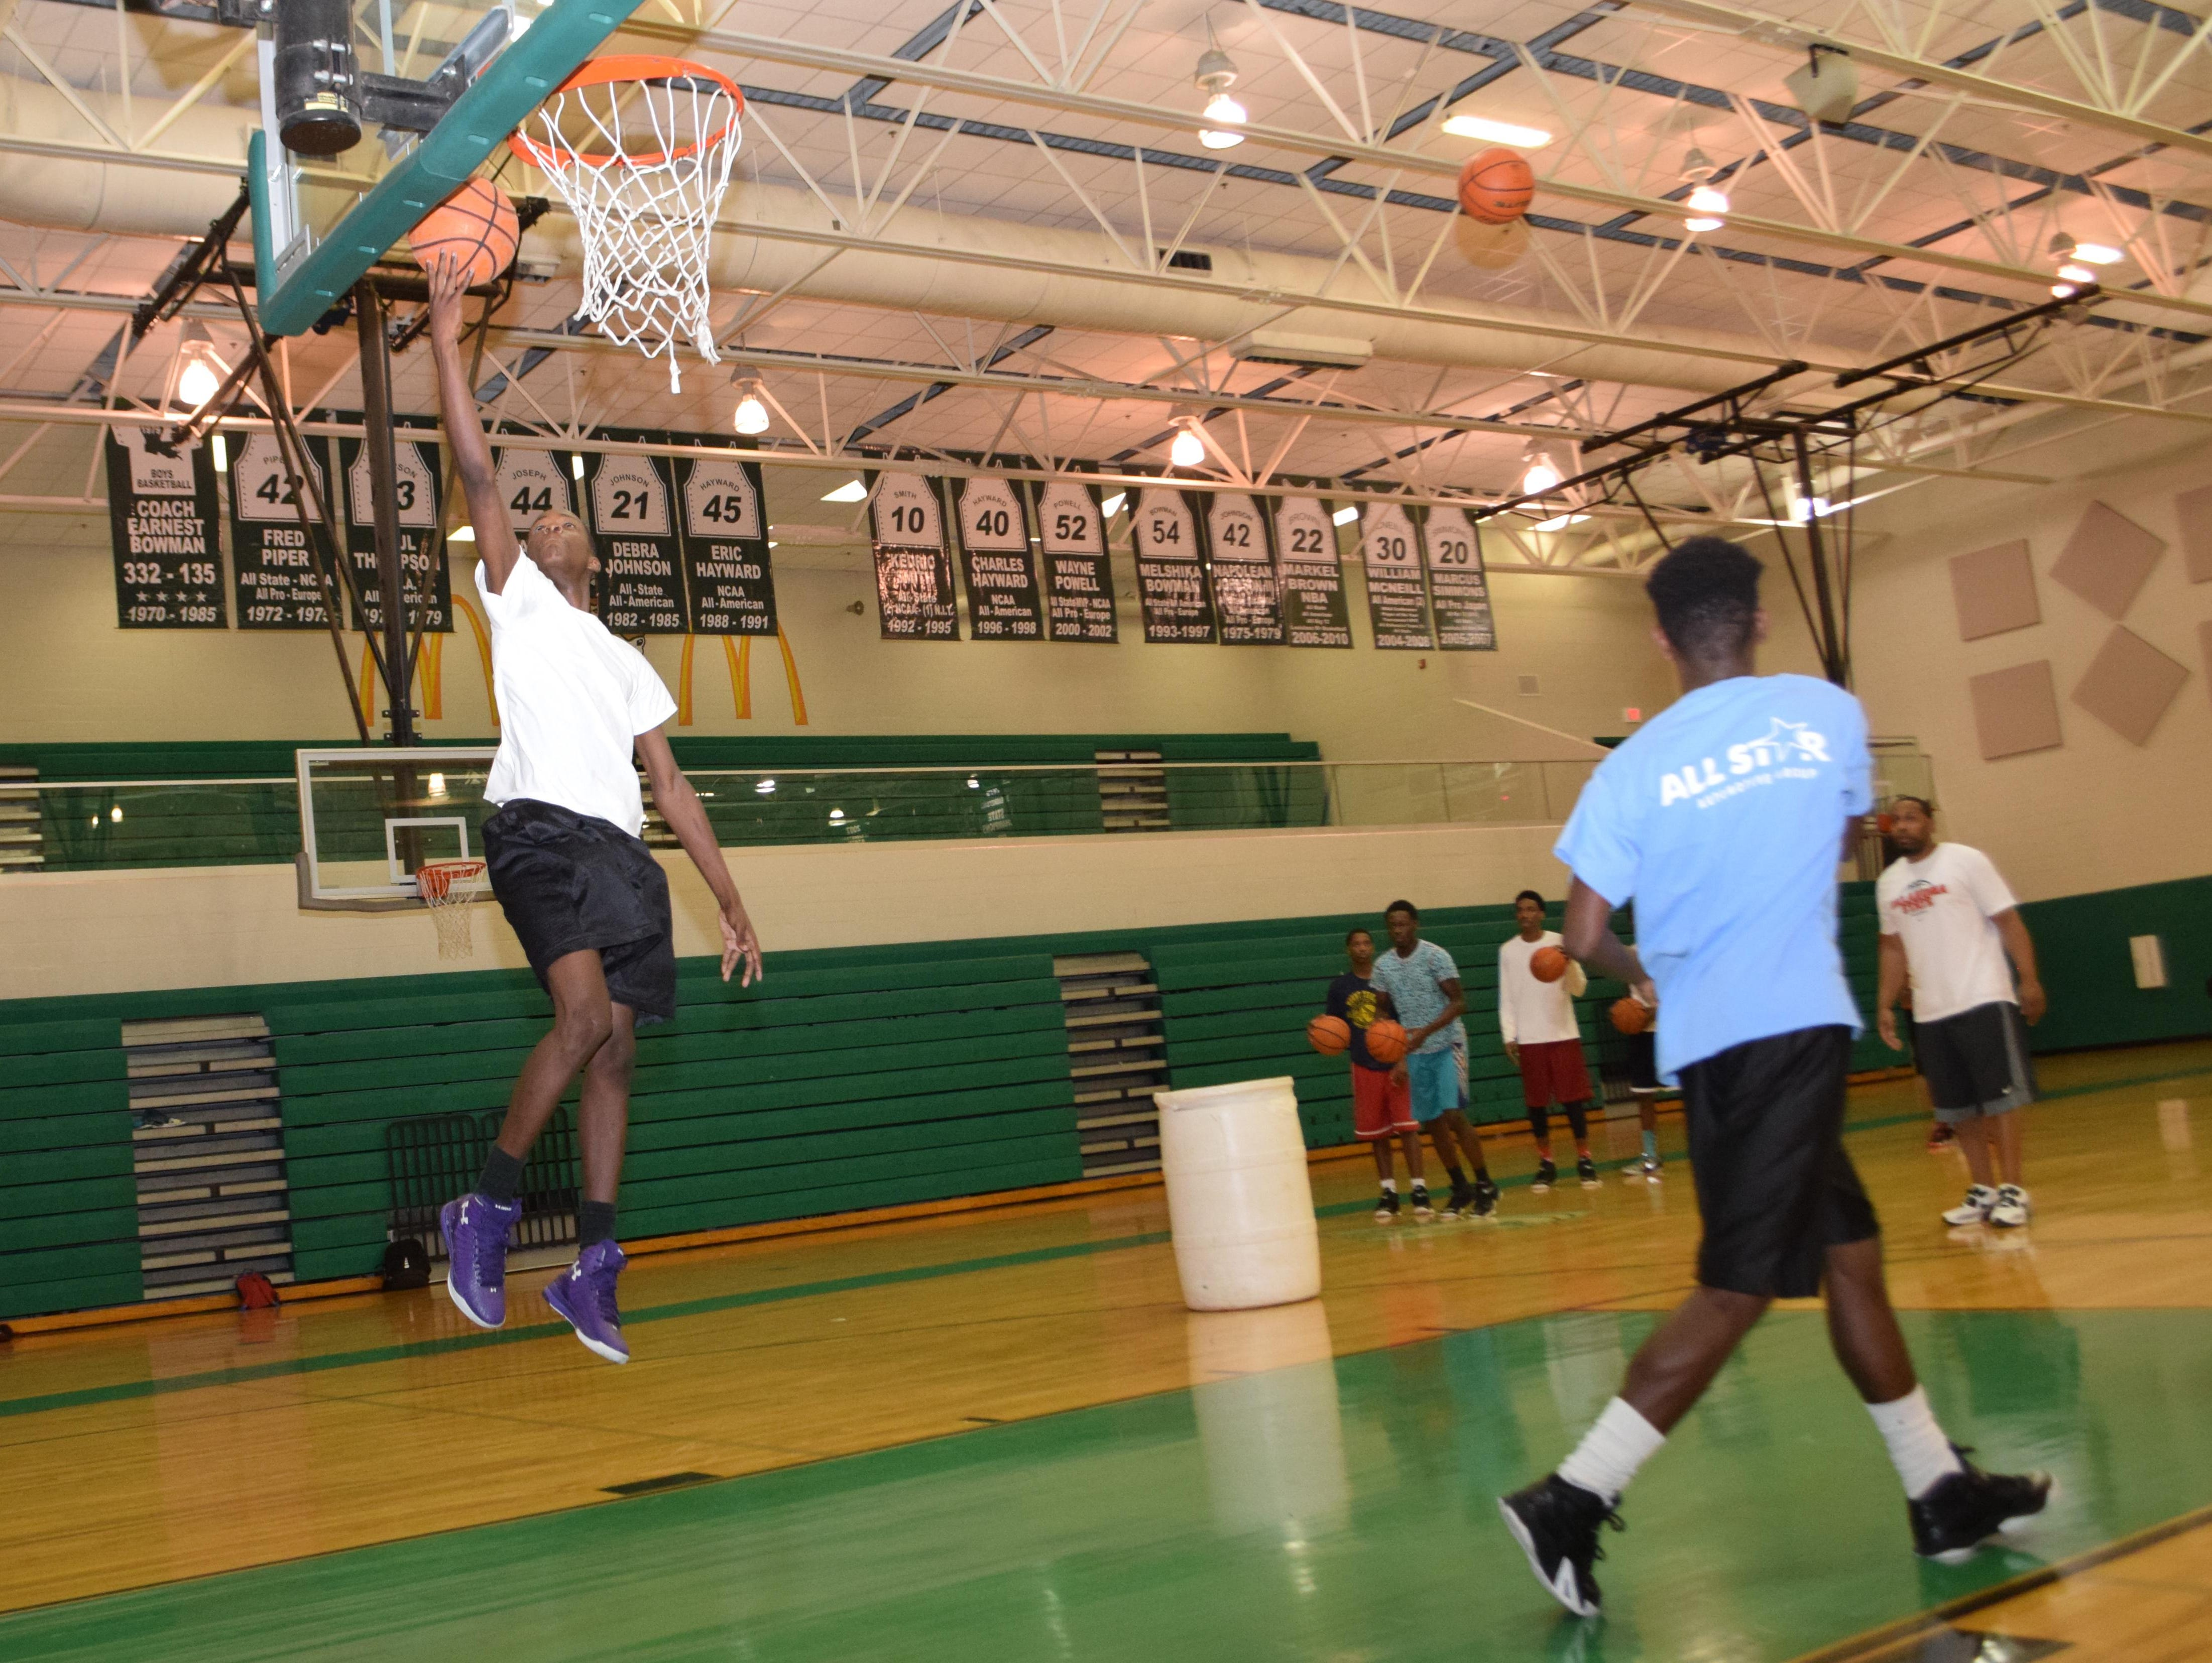 Peabody's Darius Smith (left) practices with the rest of the Peabody team Wednesday. The Peabody Magnet High School basketball team won the Houston National Summer Showcase.